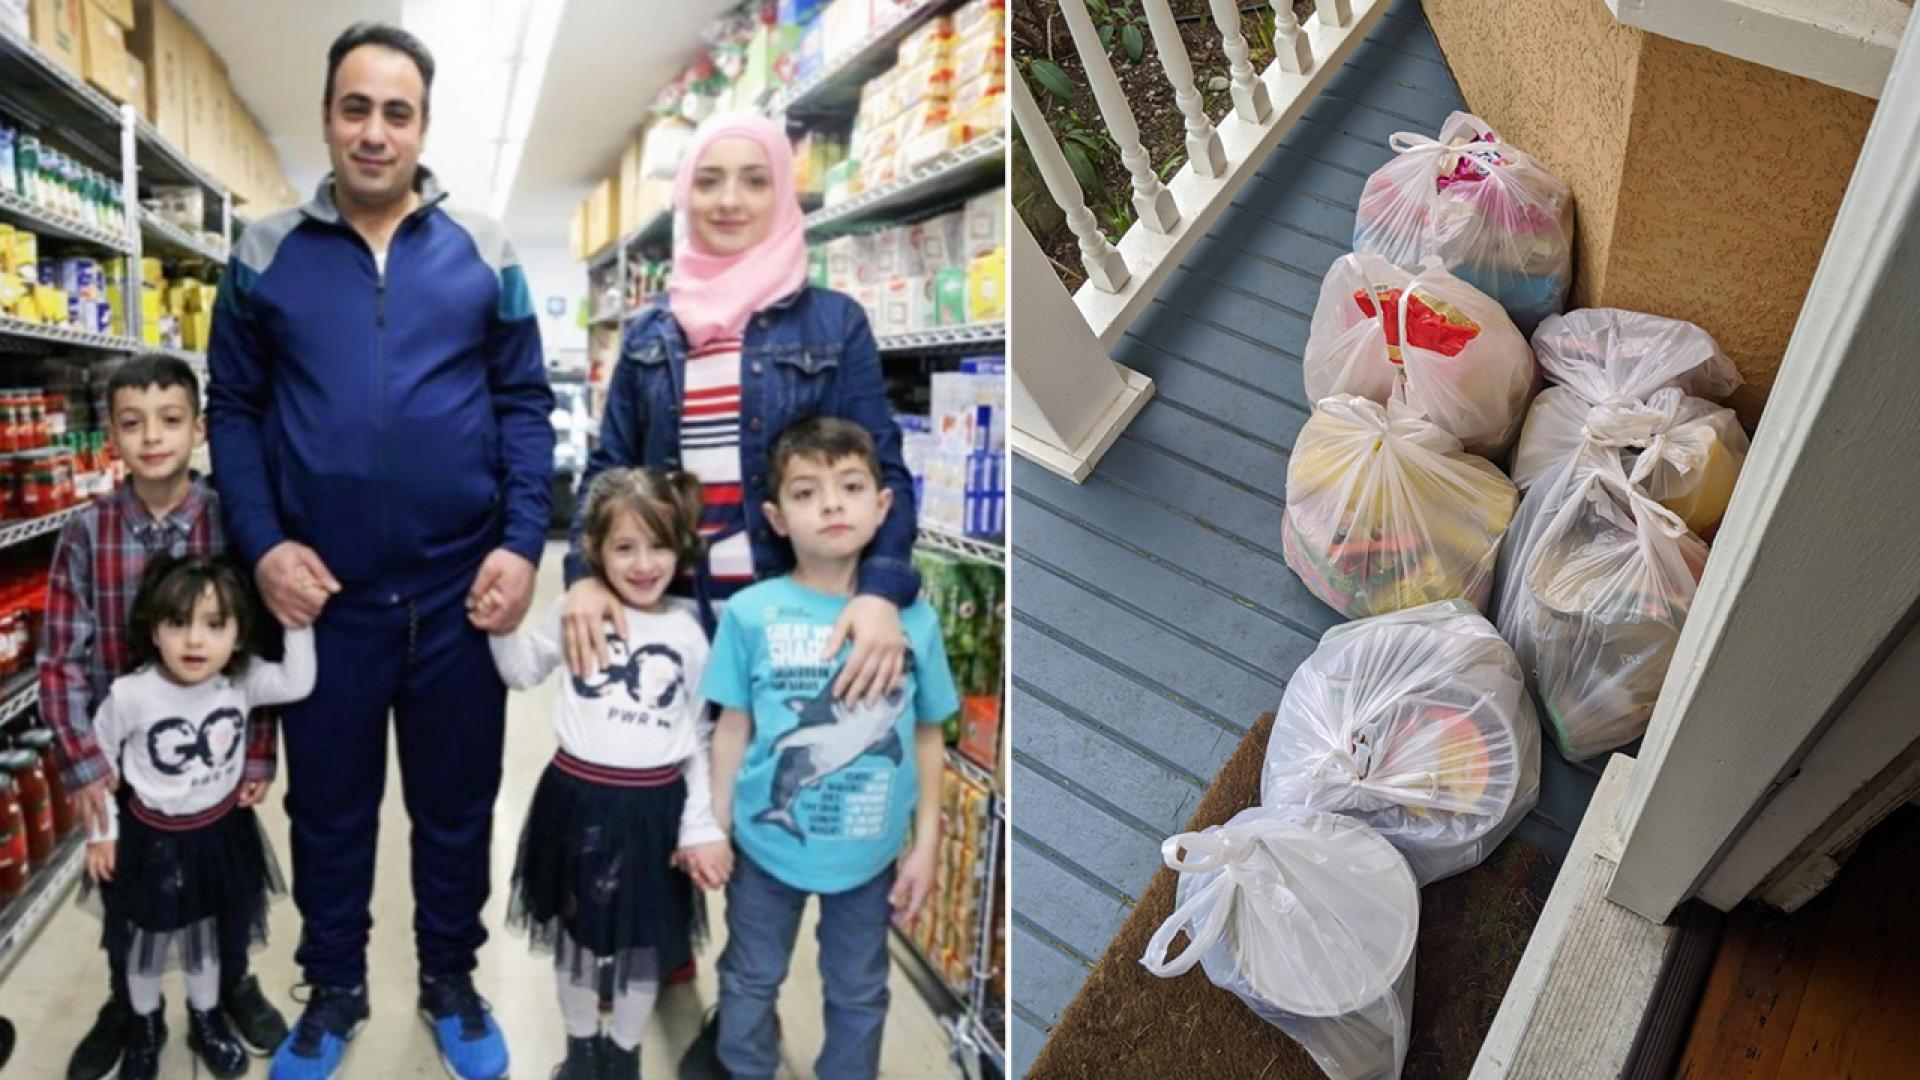 A family of refugees that resettled in Canada five years ago surprised the family that supported their move with fresh groceries after they were asked to self-quarantine.